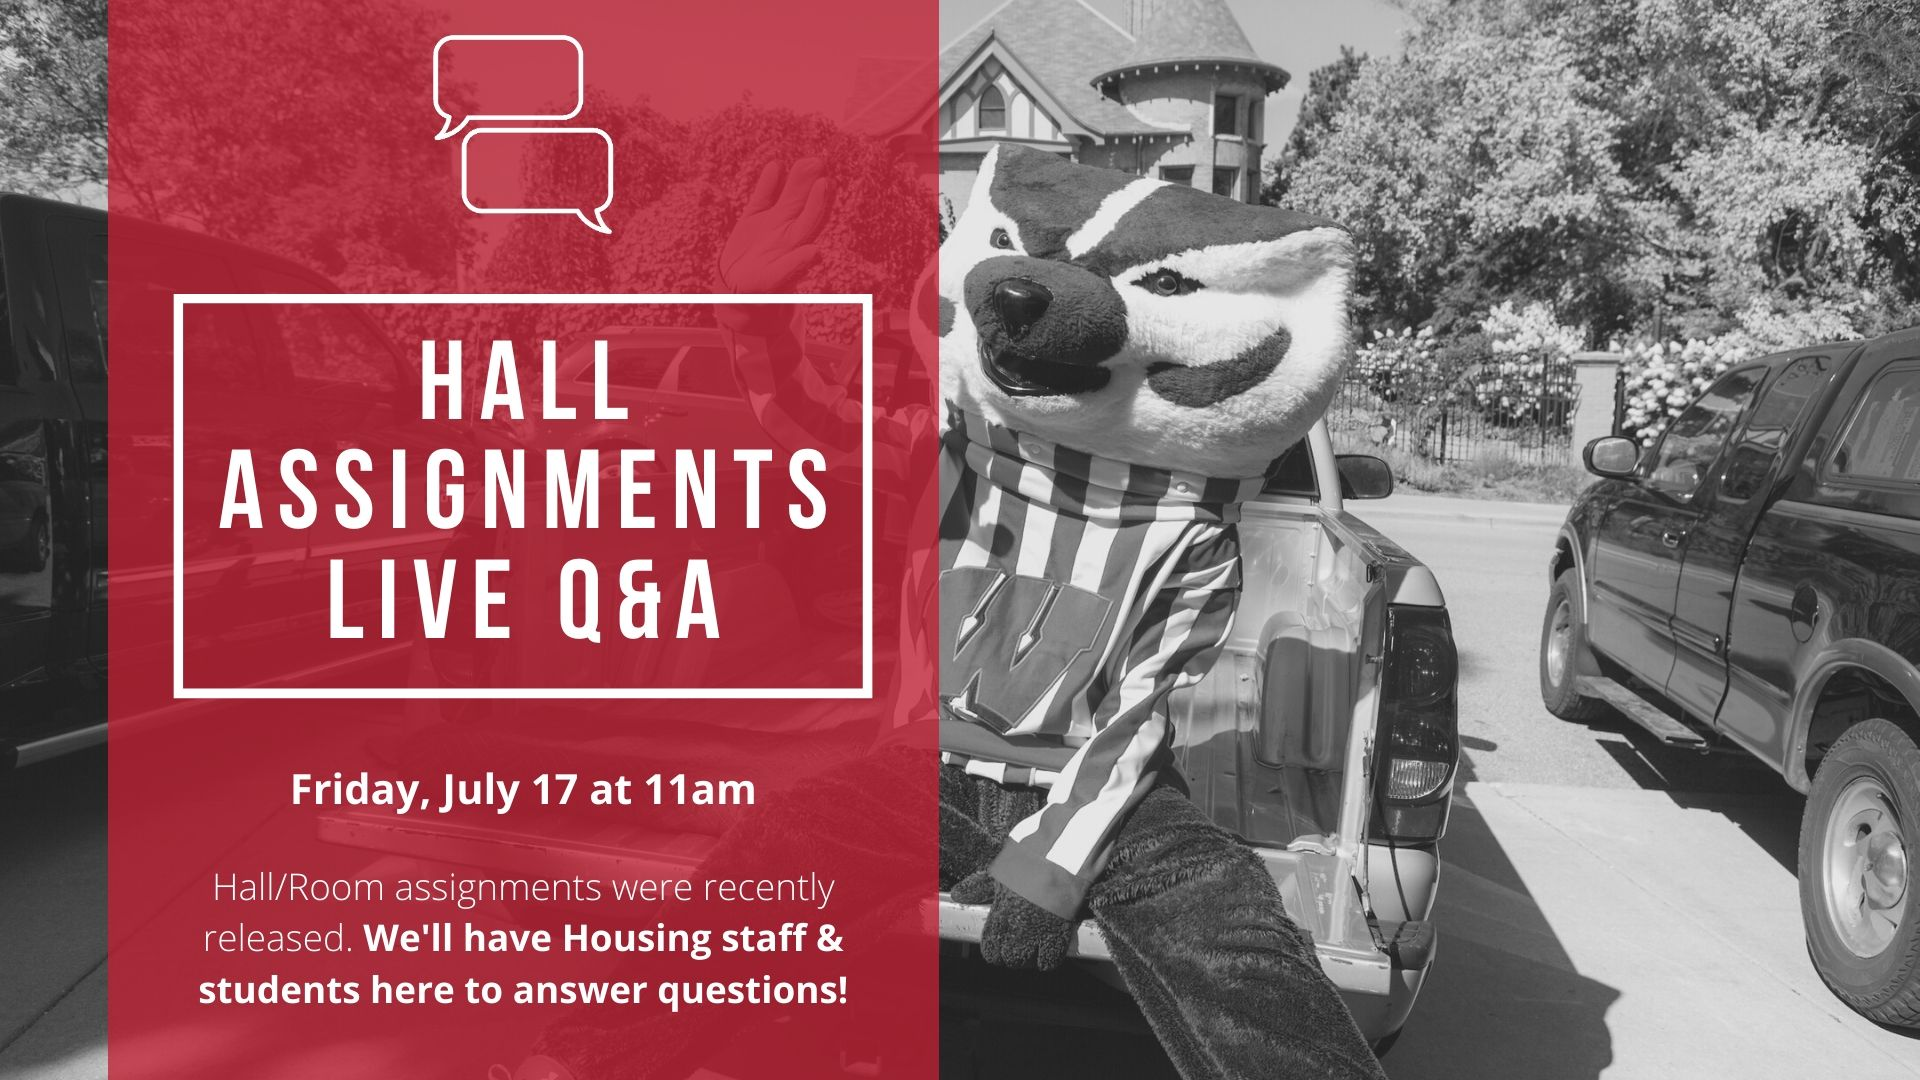 Hall Assignments Live Q & A., Friday, July 17 at 11am